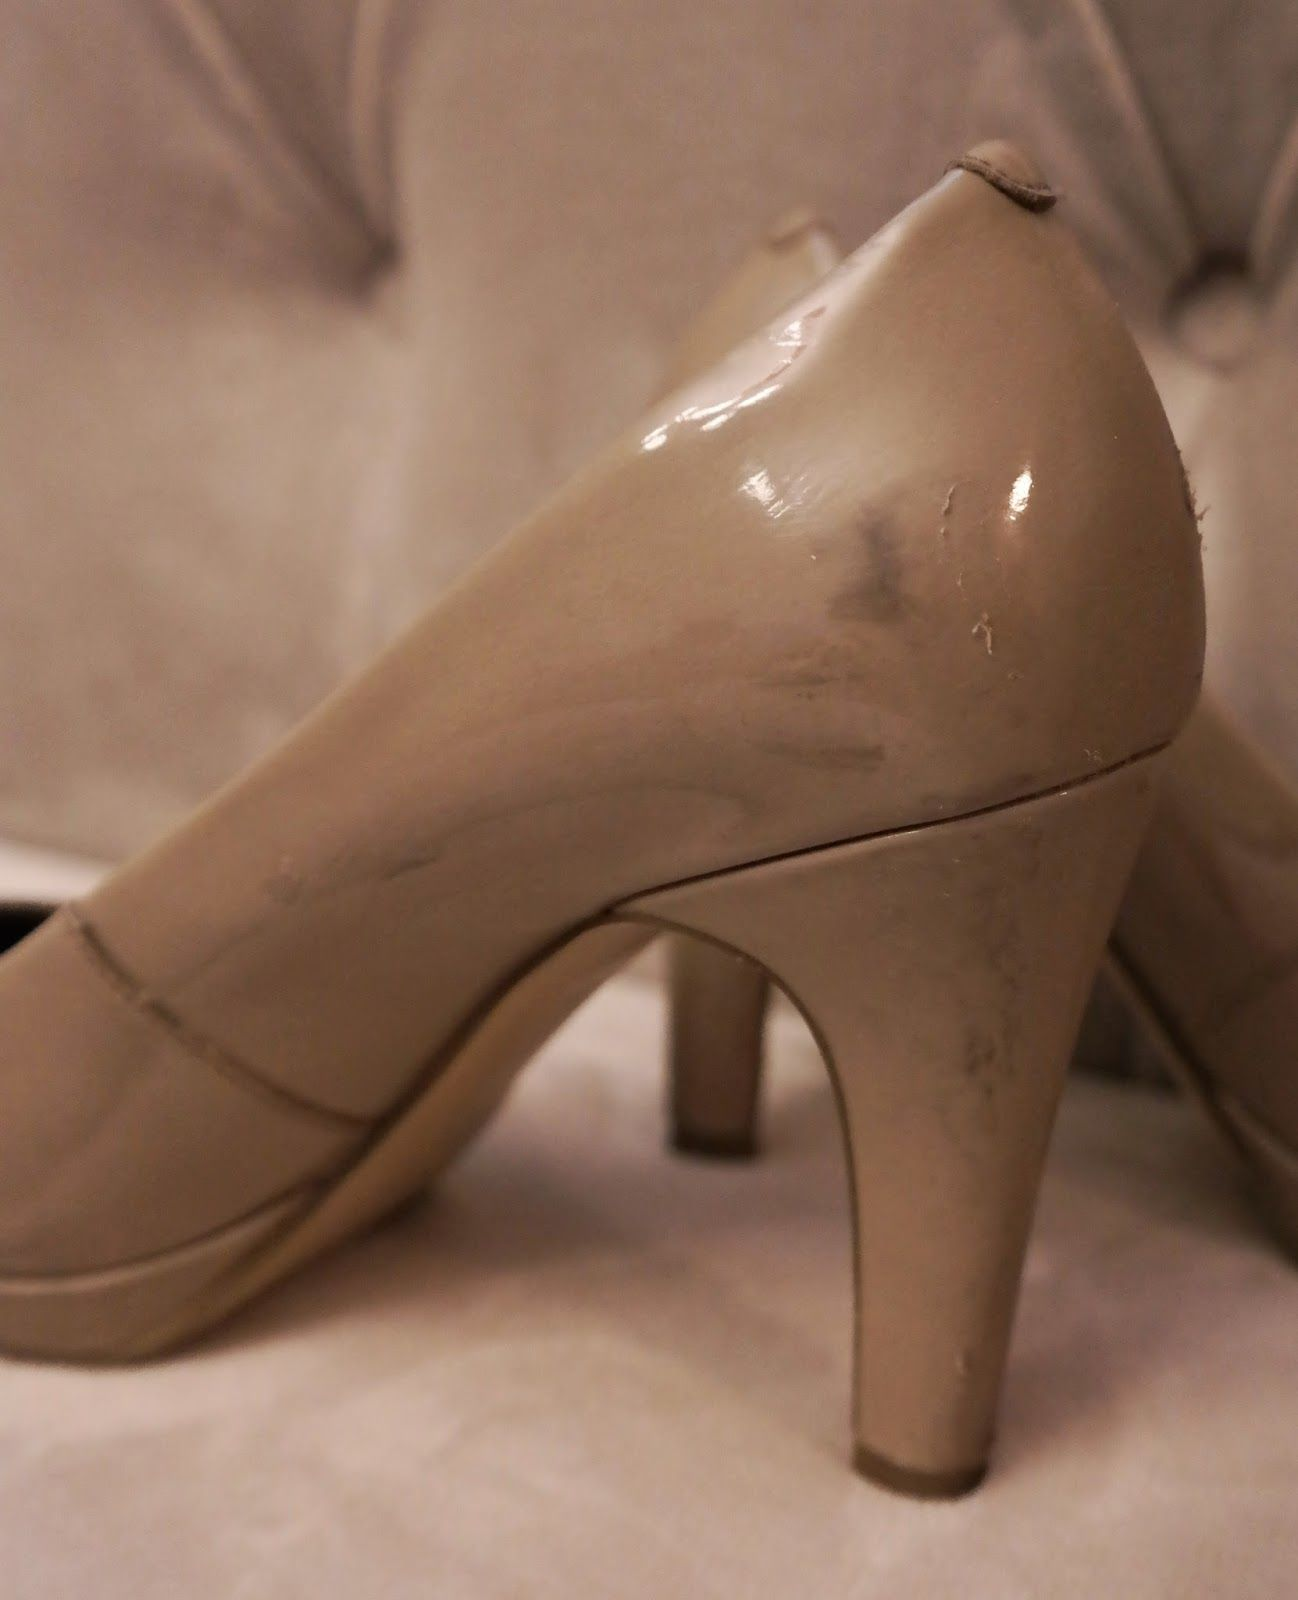 KOENIG Style: How To Clean Your Neglected Heels